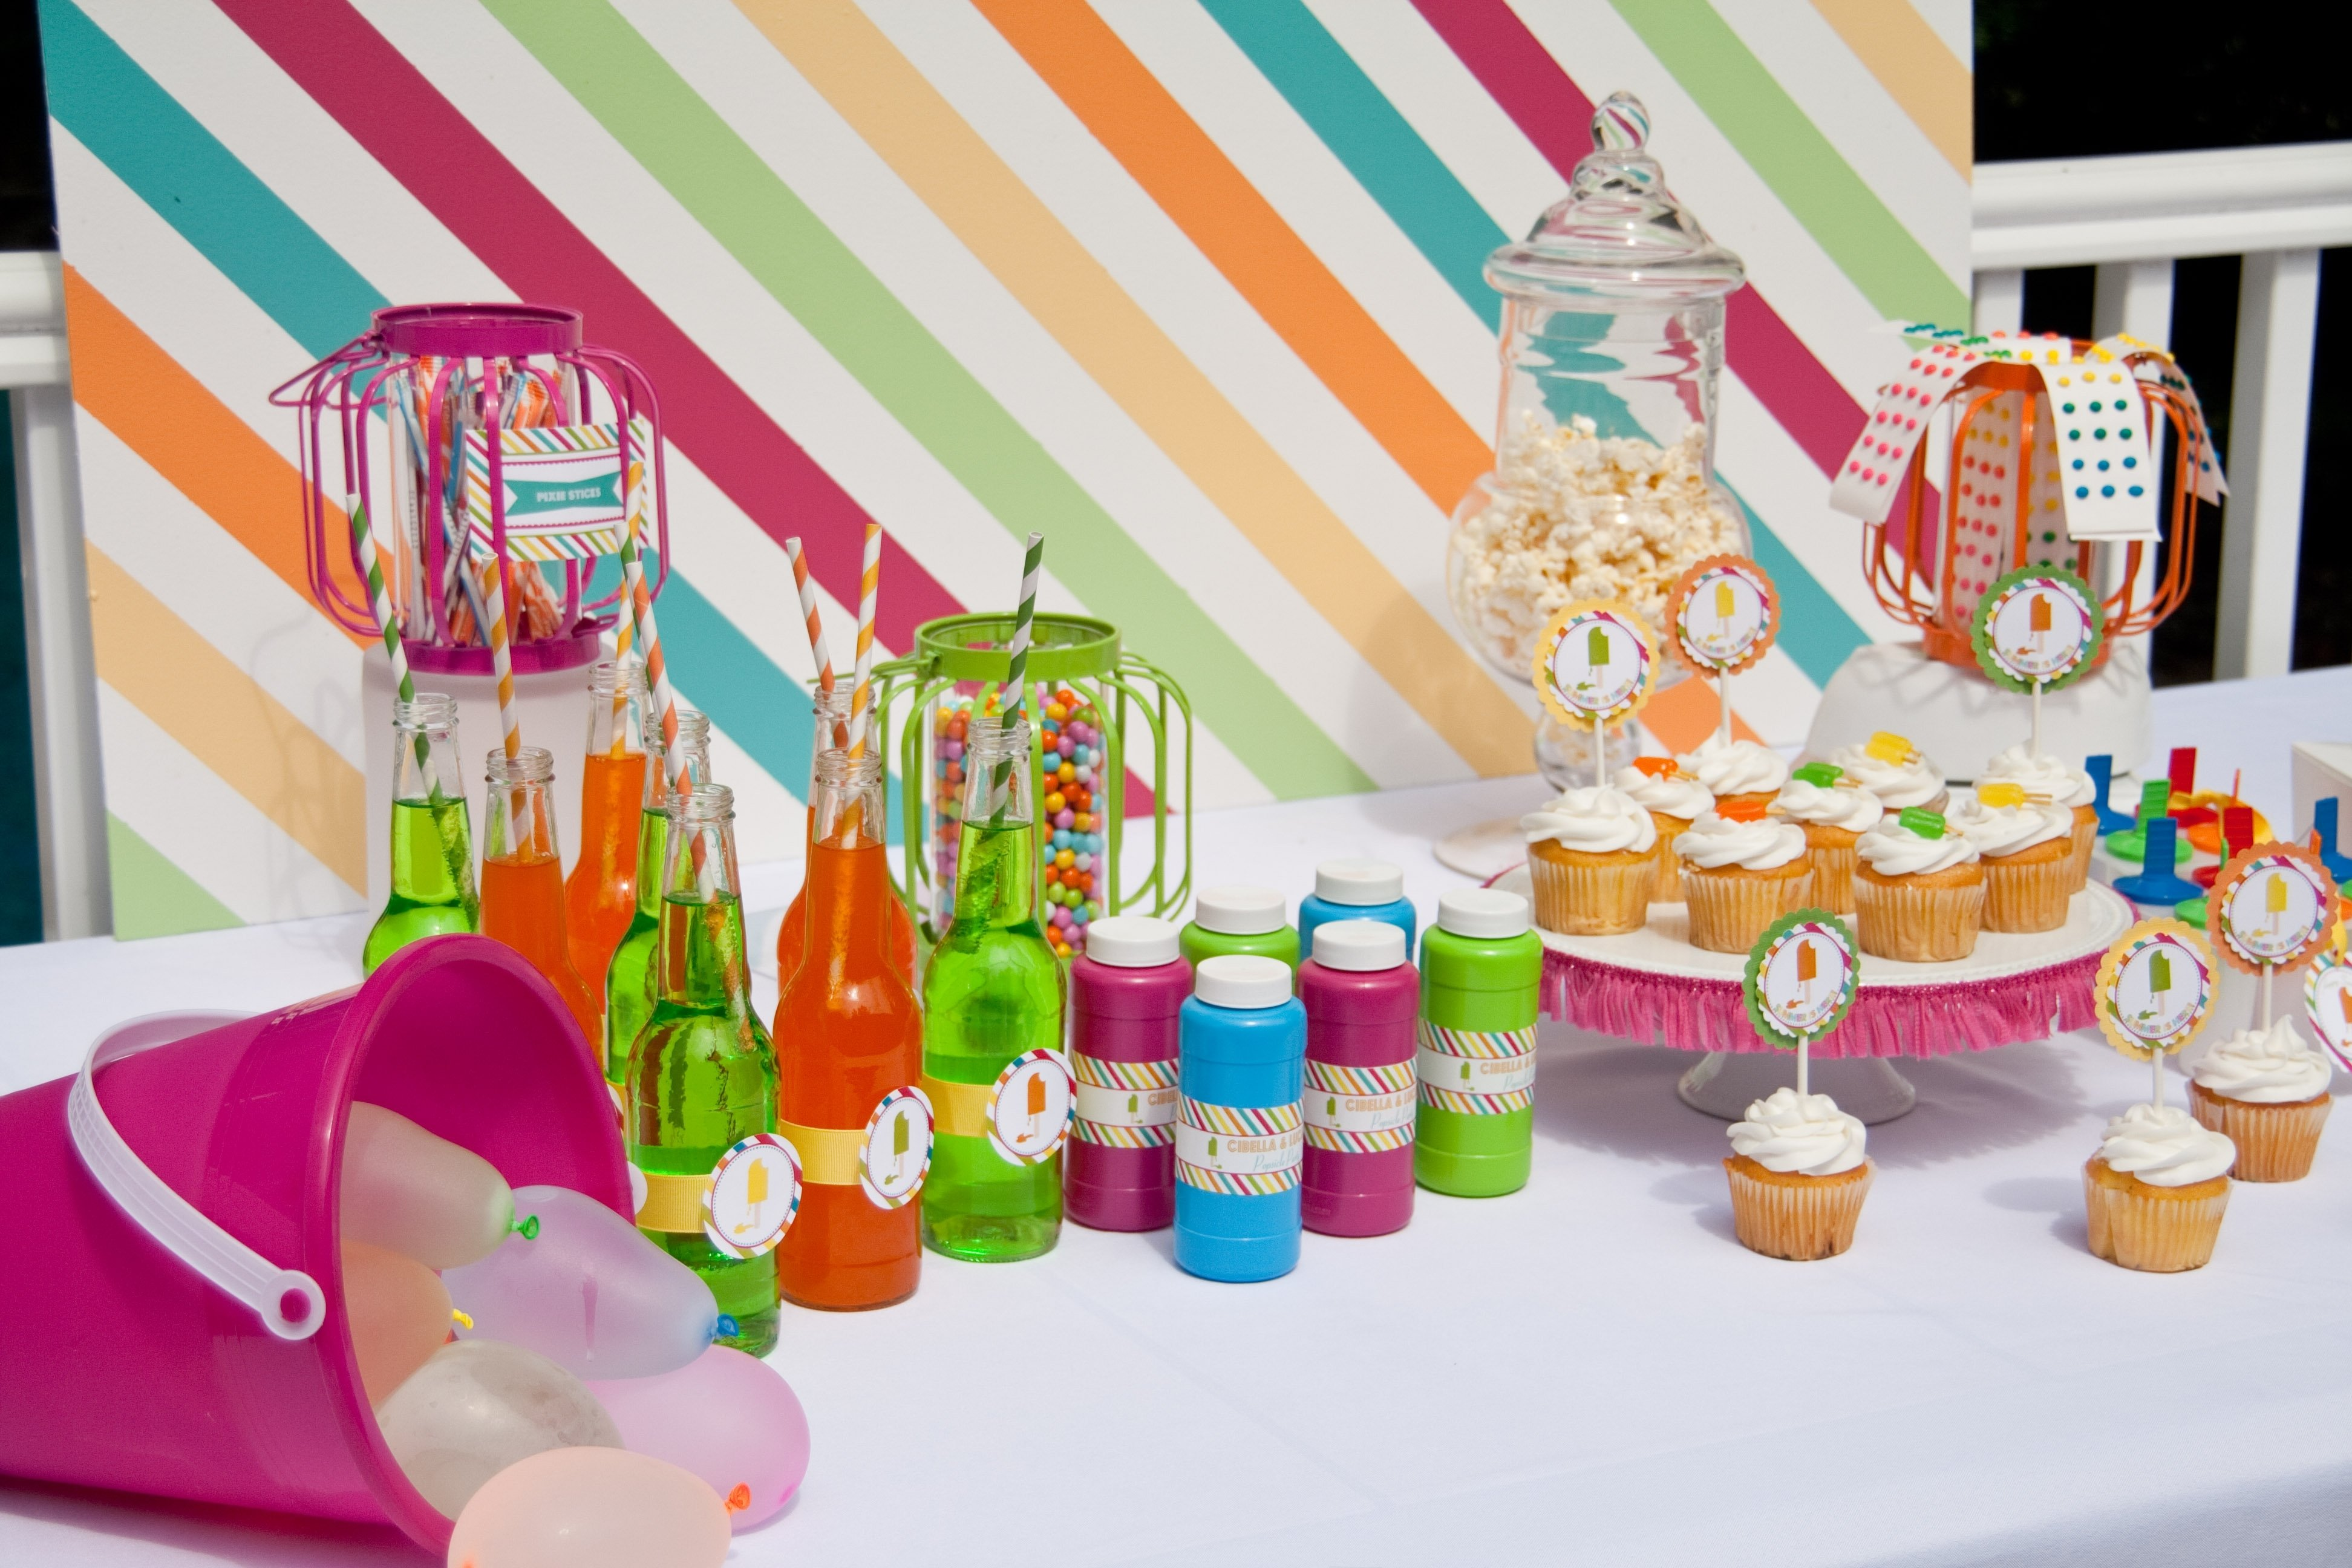 10 Nice Summer Party Ideas For Kids kids party ideas for boys in frantic summer party ideas outdoor 2020